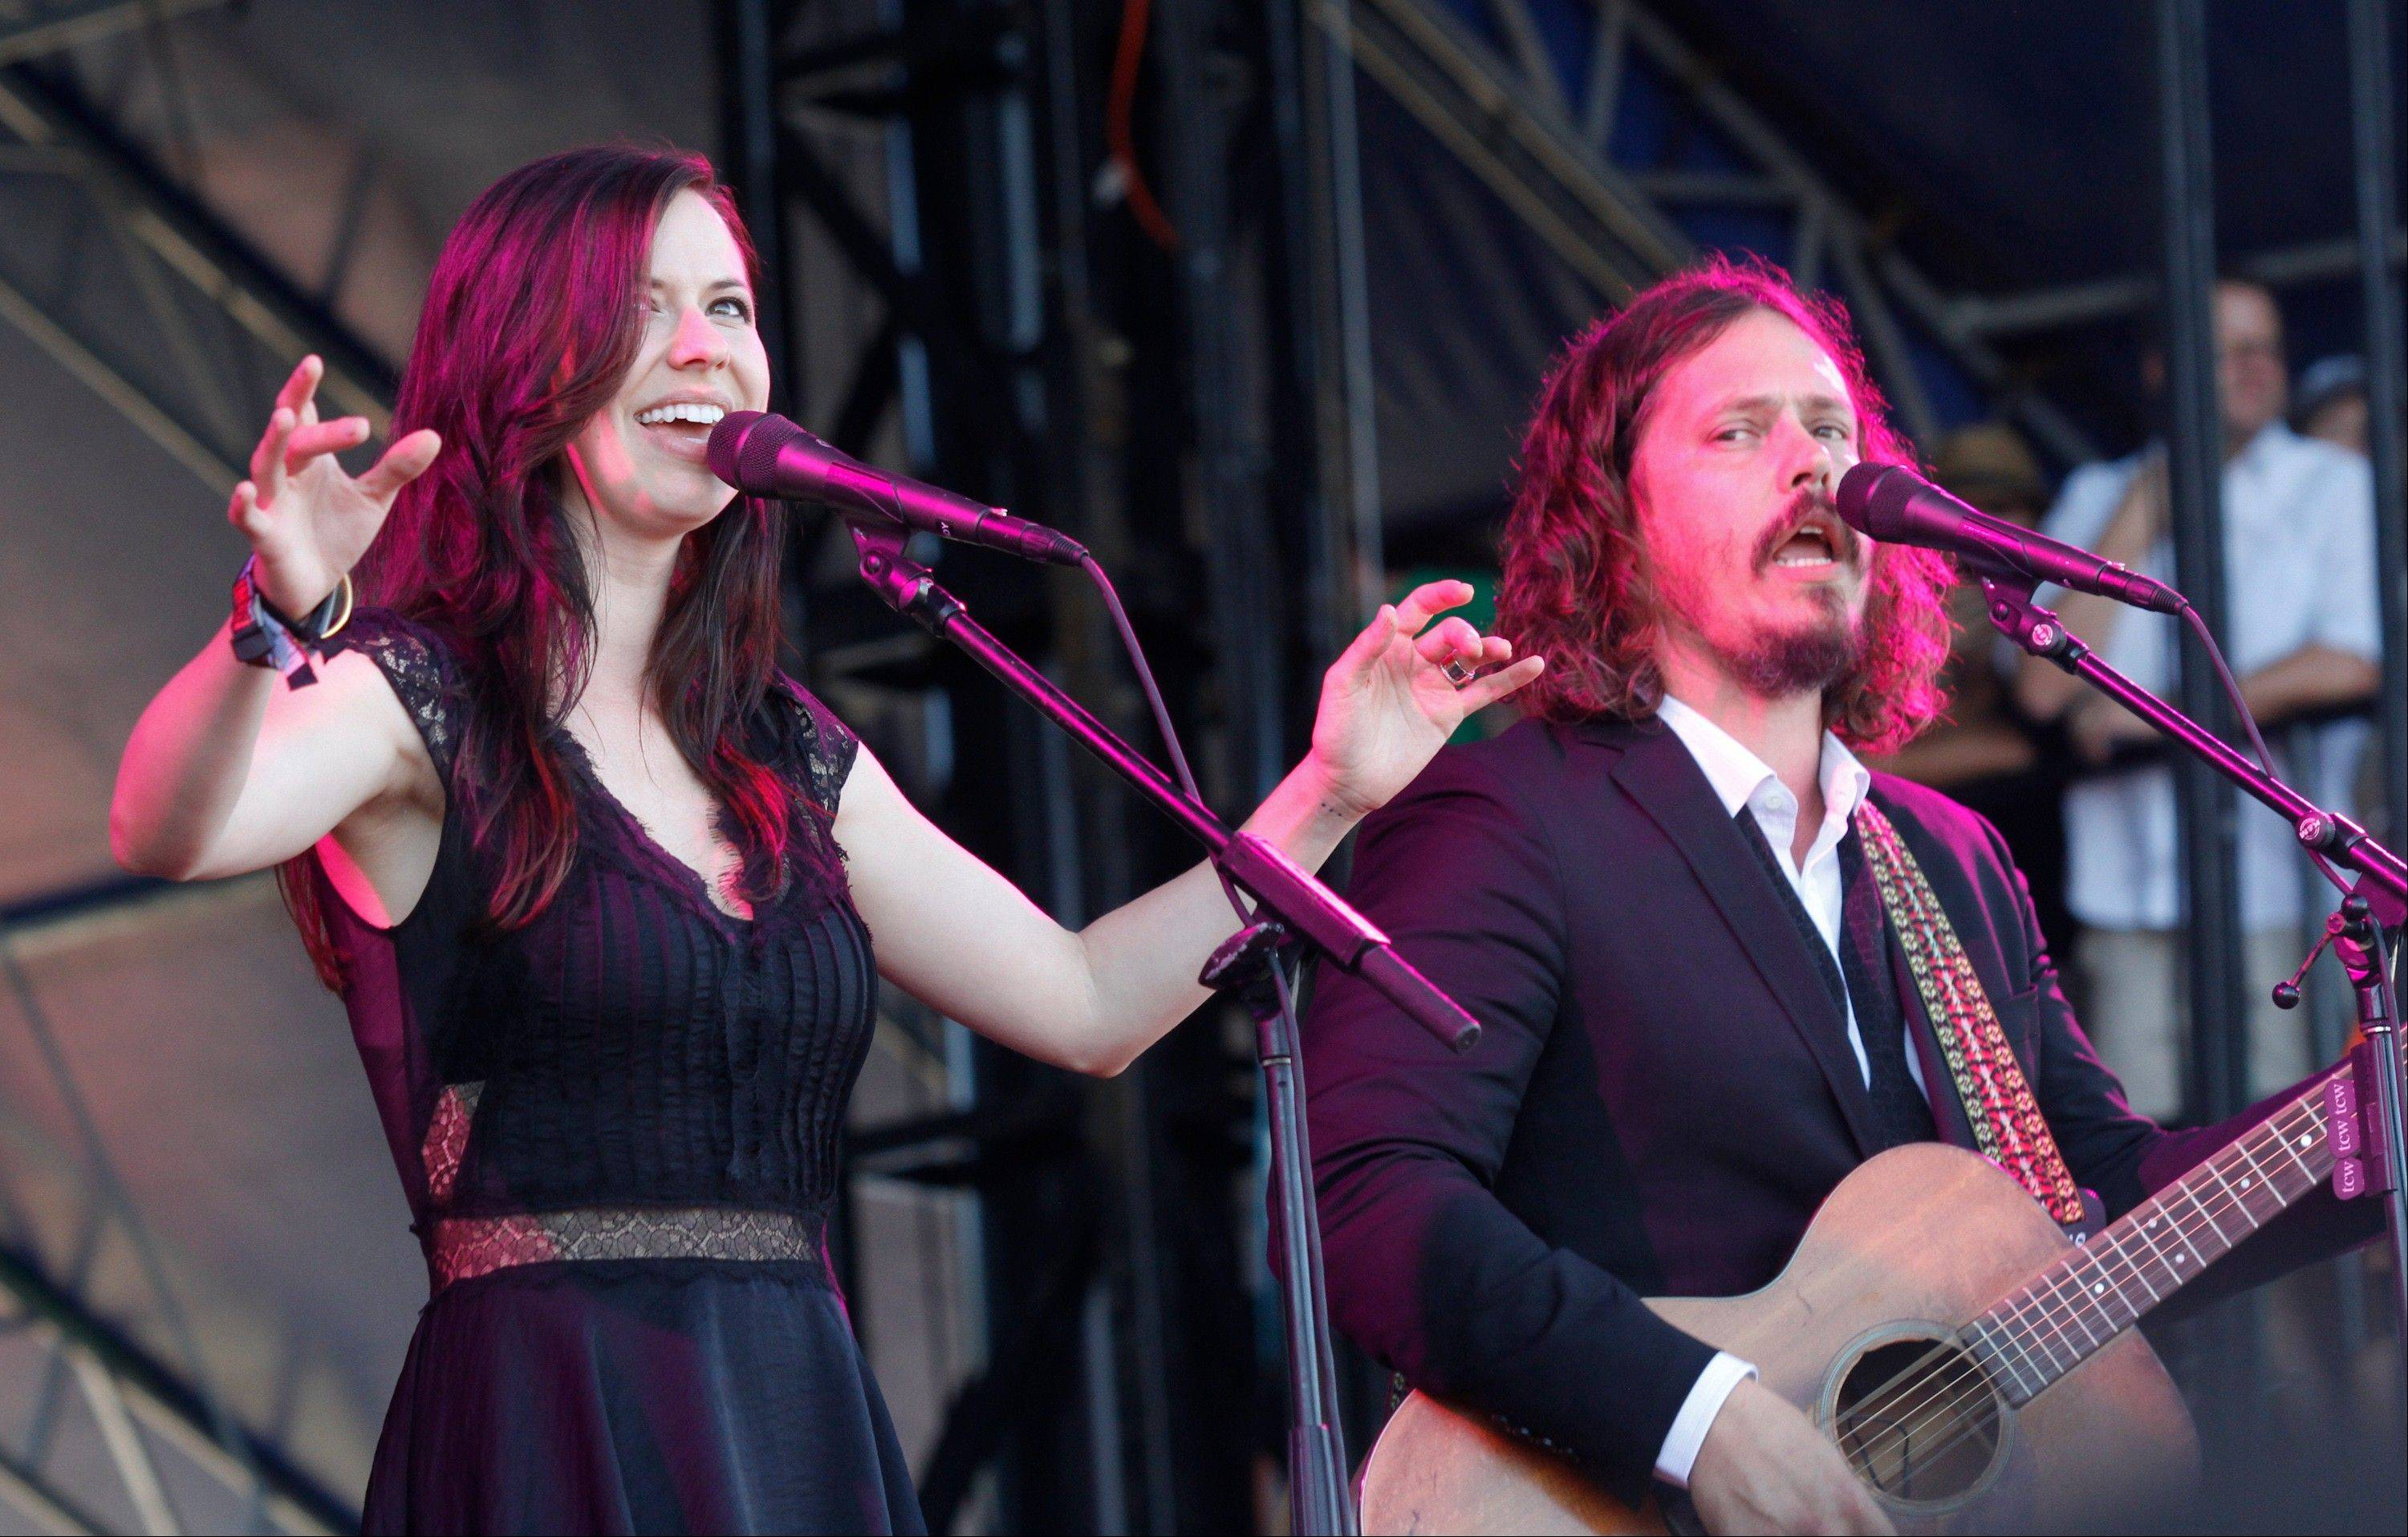 Joy Williams, left, and John Paul White of The Civil Wars are calling off their upcoming tour dates, citing irreconcilable differences.